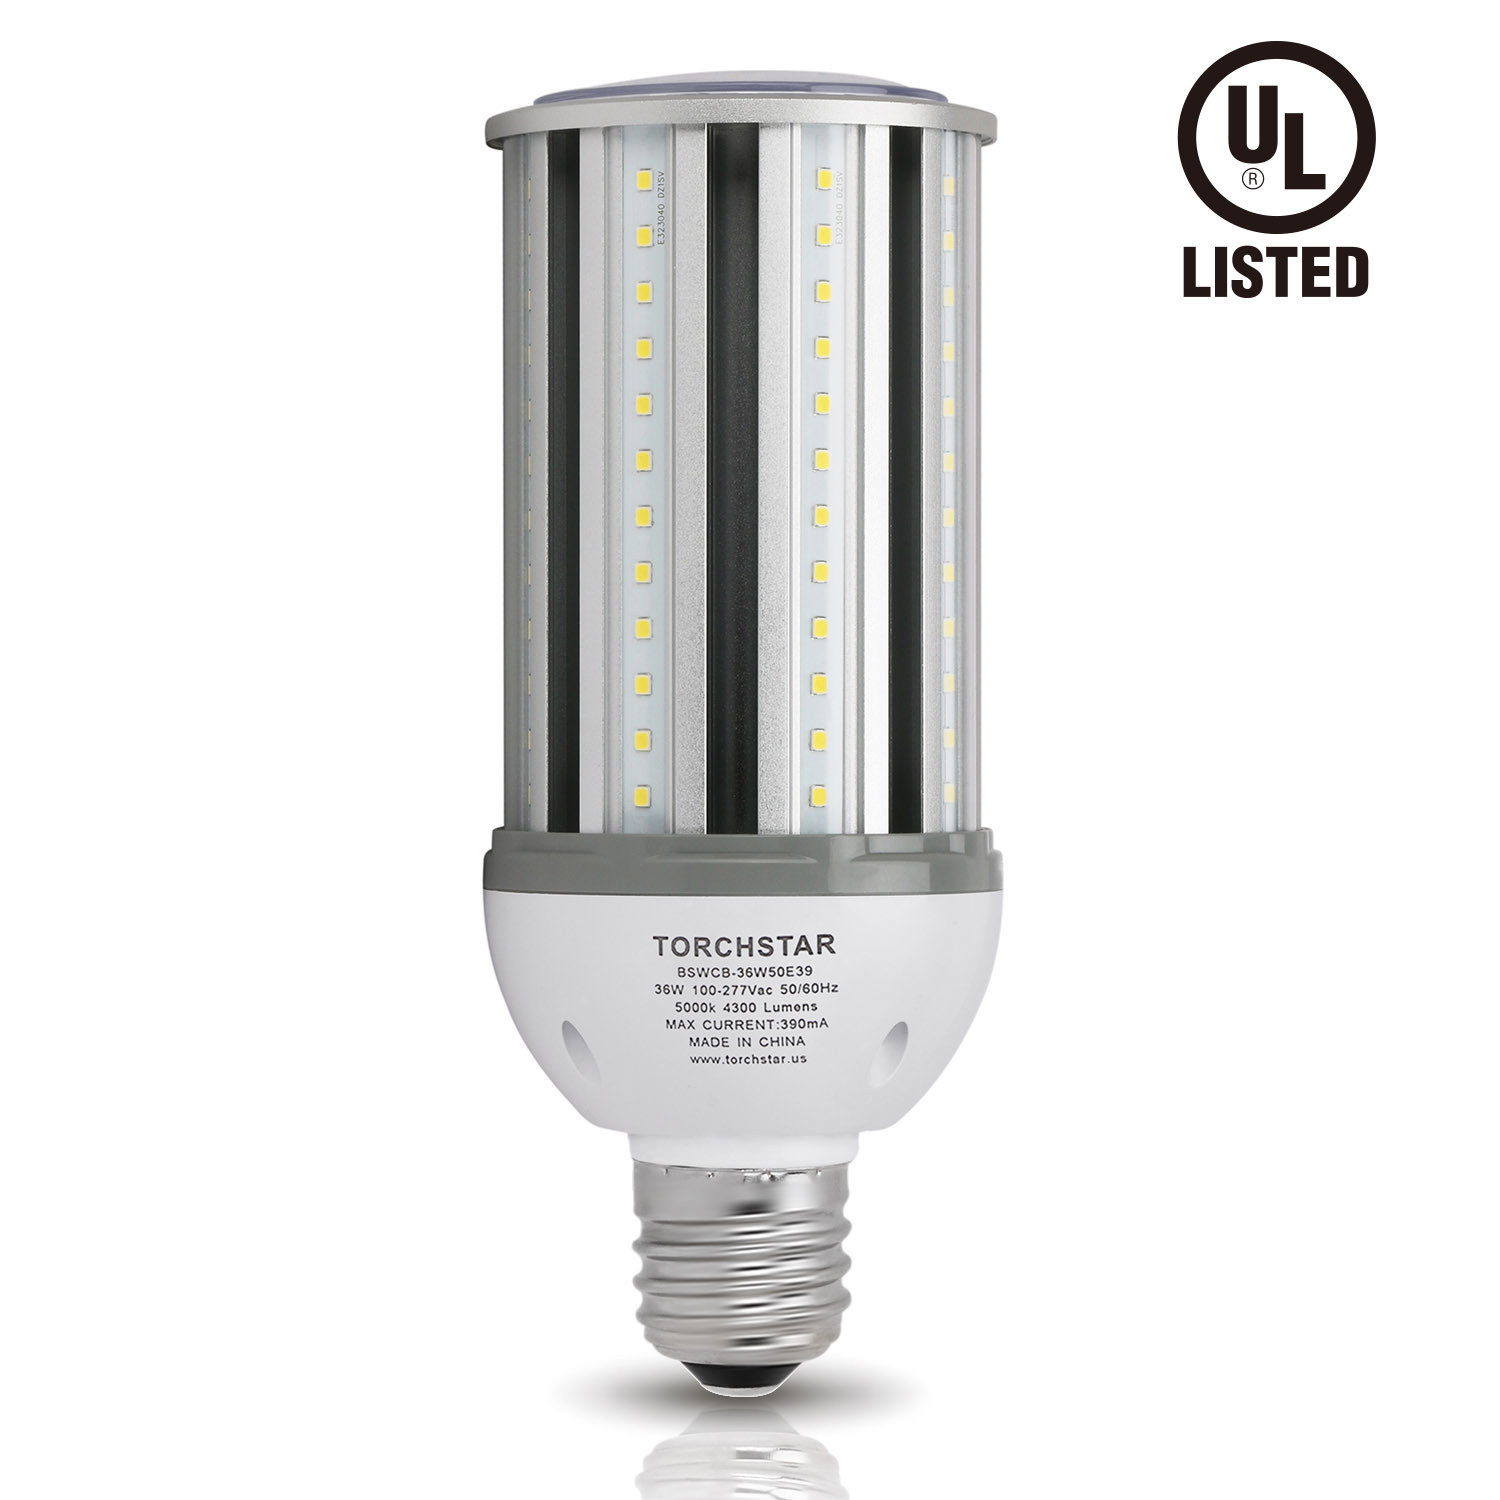 TORCHSTAR 36W LED Lights Corn Light Bulb, E39 Base, 5000K Daylight